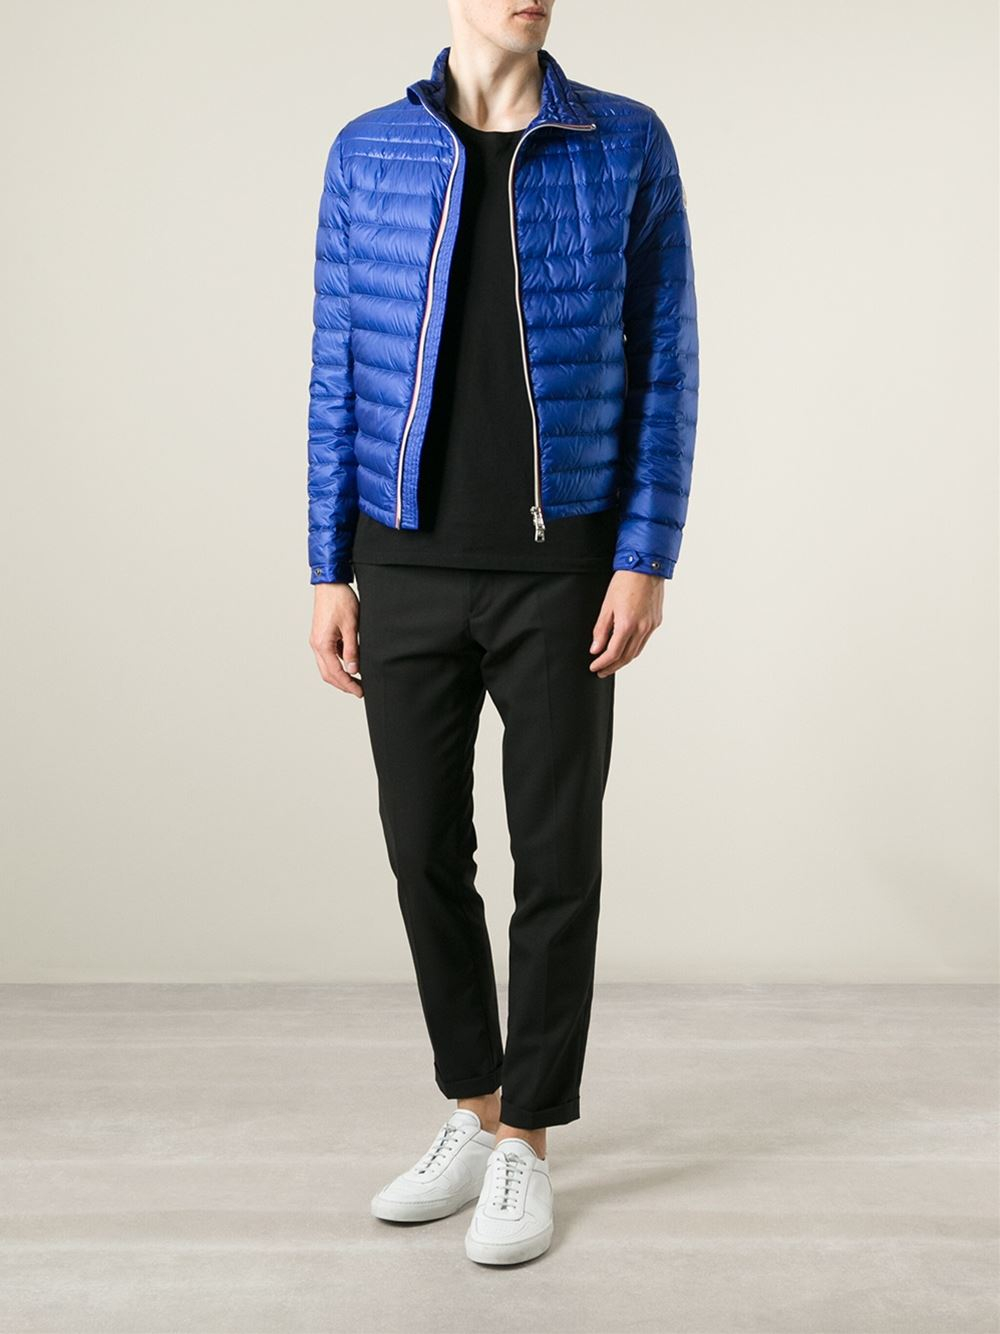 d9c844987a6b closeout lyst moncler daniel padded jacket in blue for men 1369a 51005